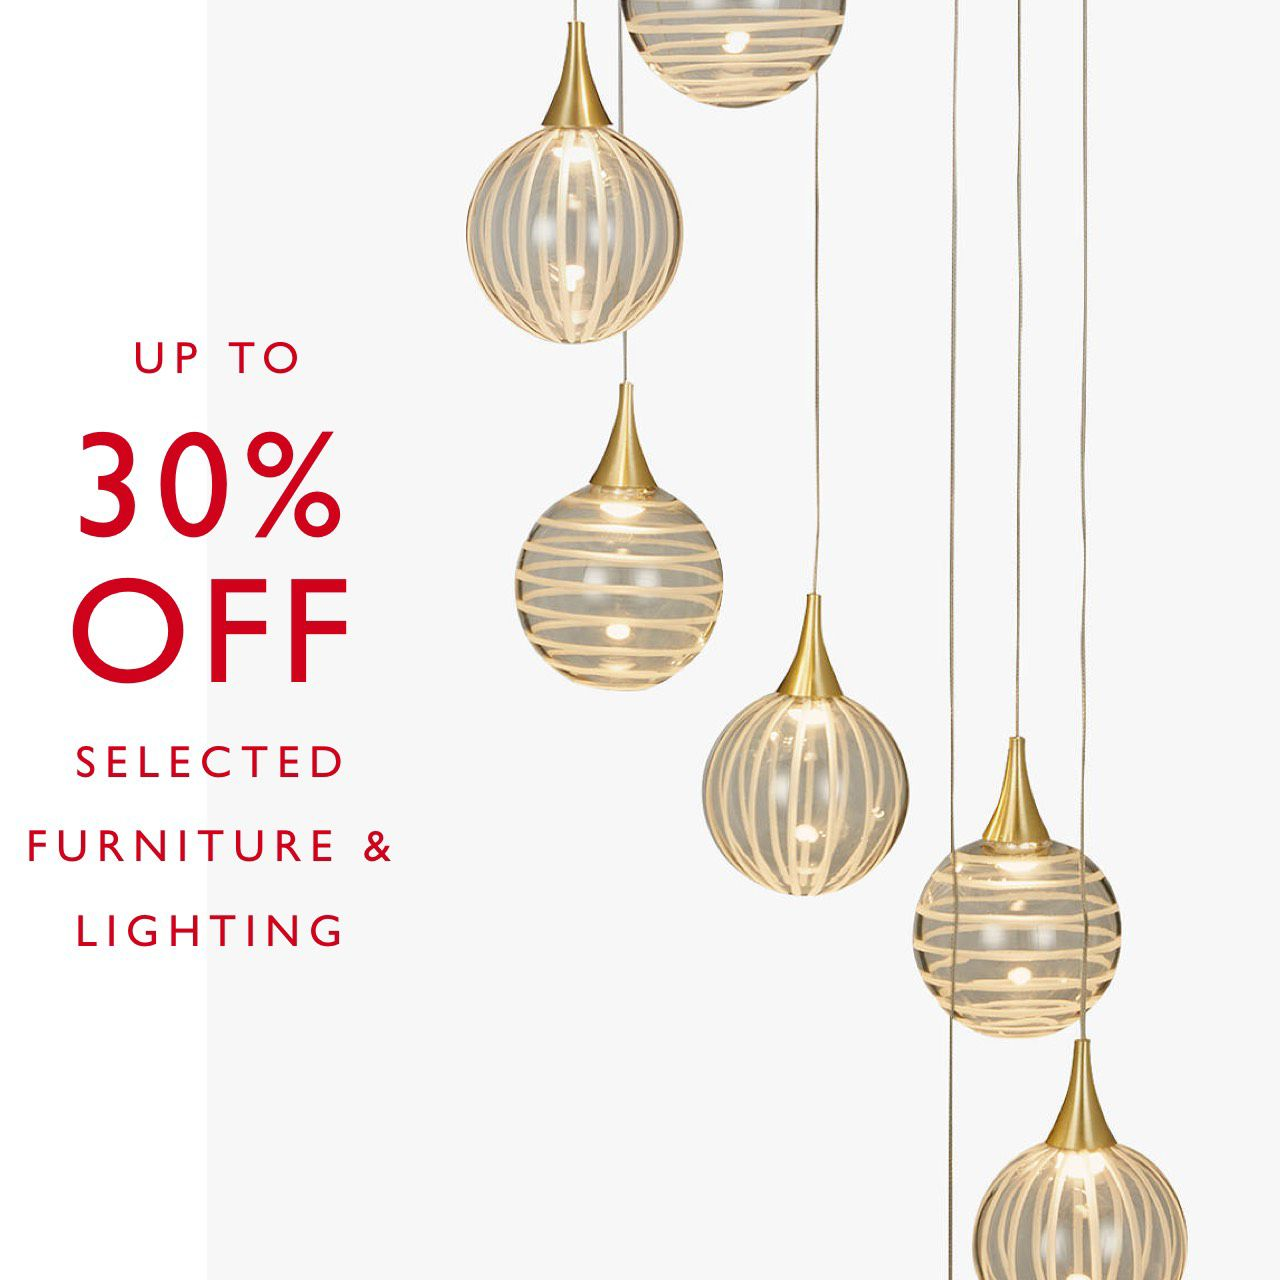 Furniture & Lights Offers